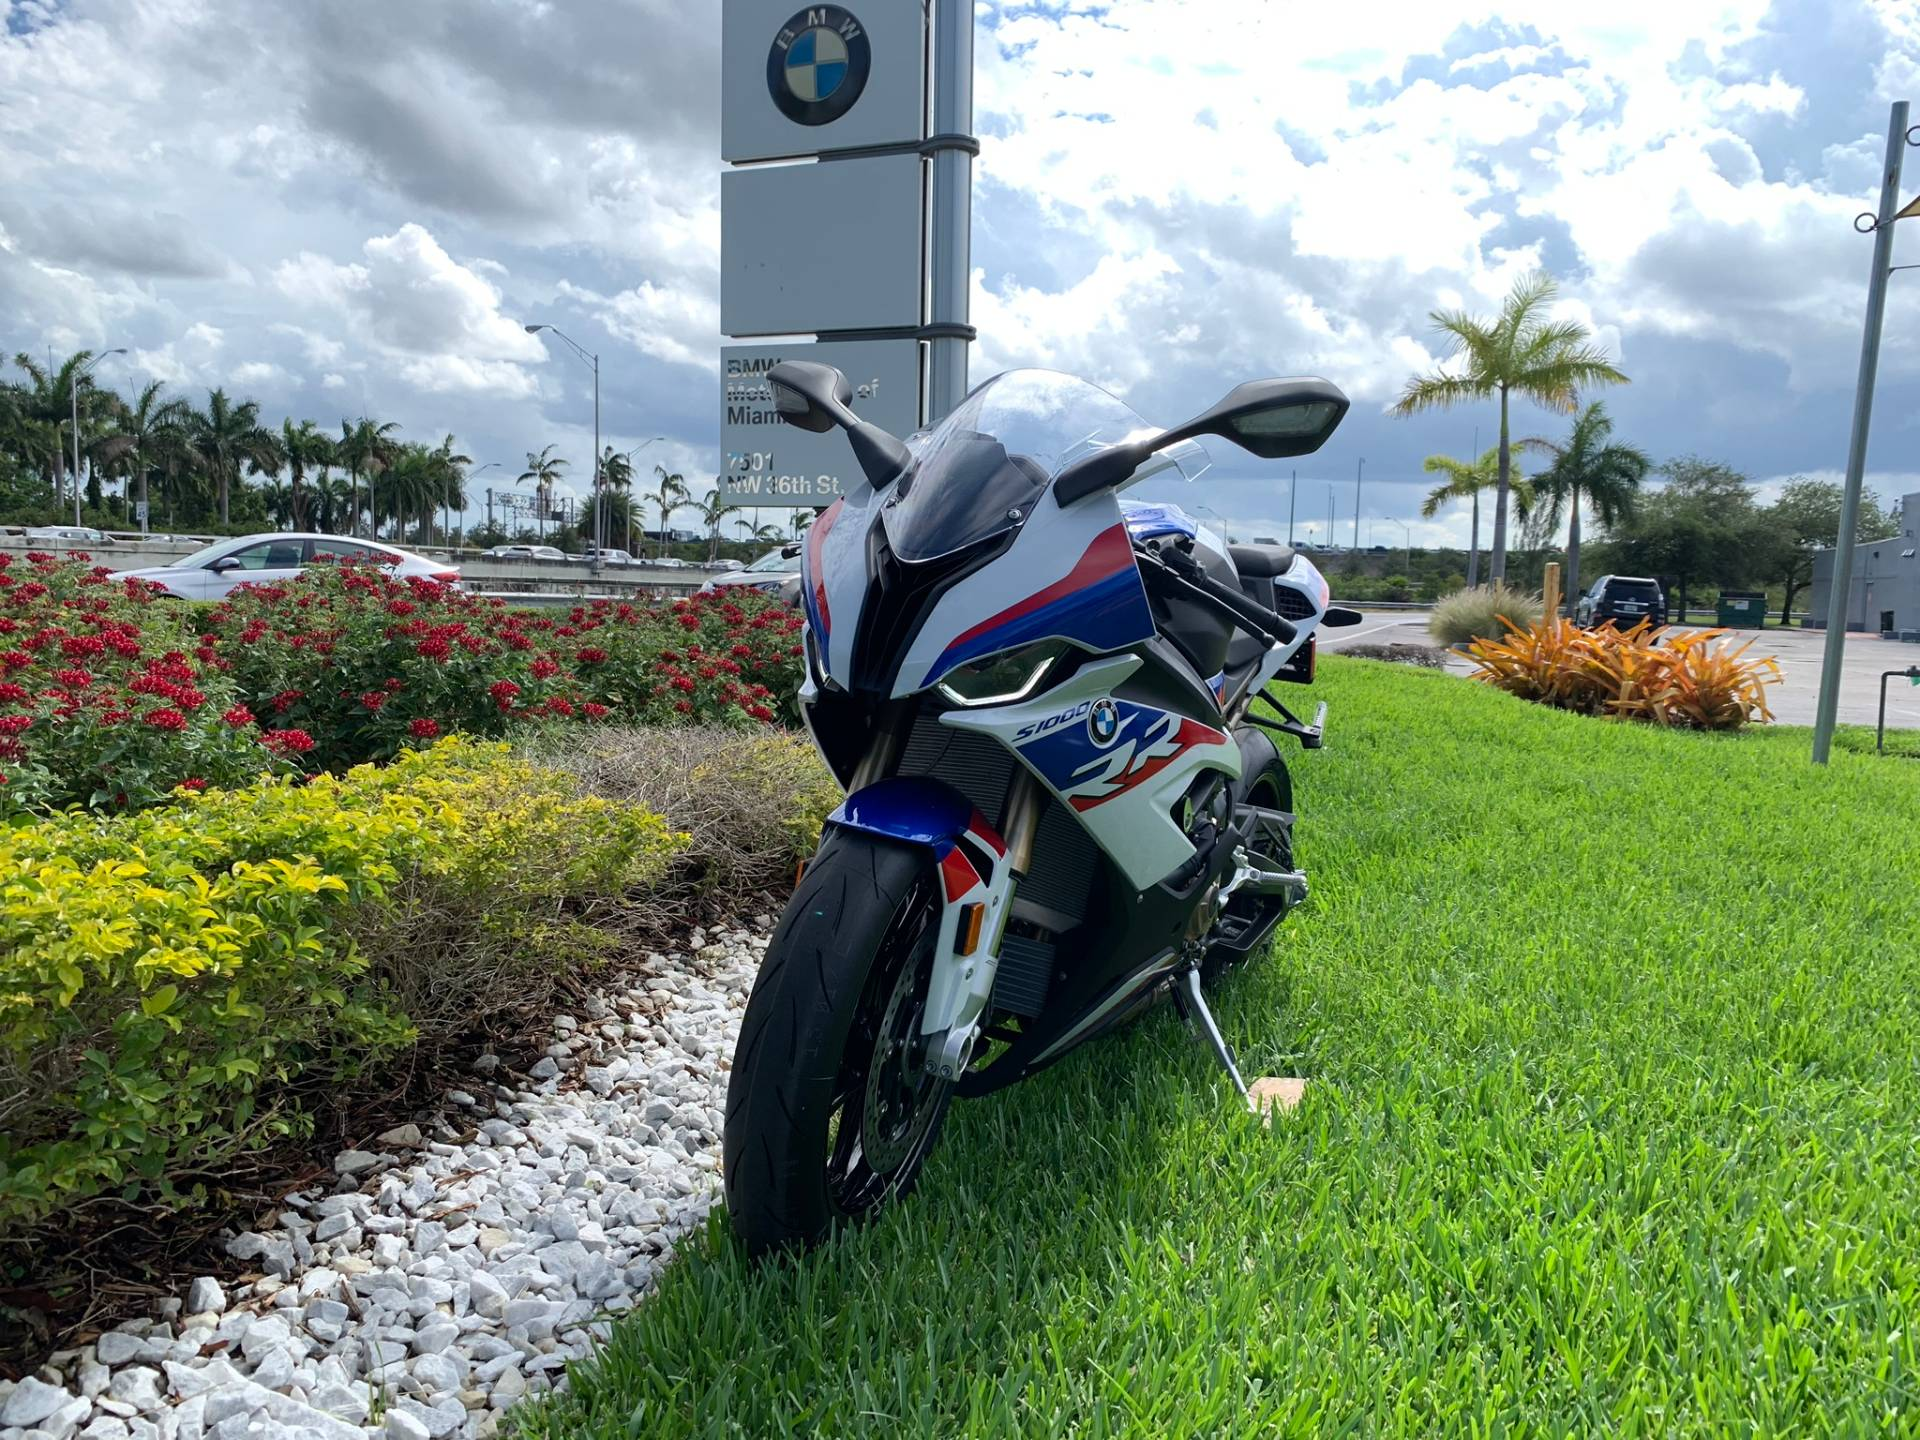 New 2020 BMW S 1000 RR for sale, BMW S 1000RR for sale, BMW Motorcycle S1000RR, new BMW RR, Sport. BMW Motorcycles of Miami, Motorcycles of Miami, Motorcycles Miami, New Motorcycles, Used Motorcycles, pre-owned. #BMWMotorcyclesOfMiami #MotorcyclesOfMiami #MotorcyclesMiami - Photo 3